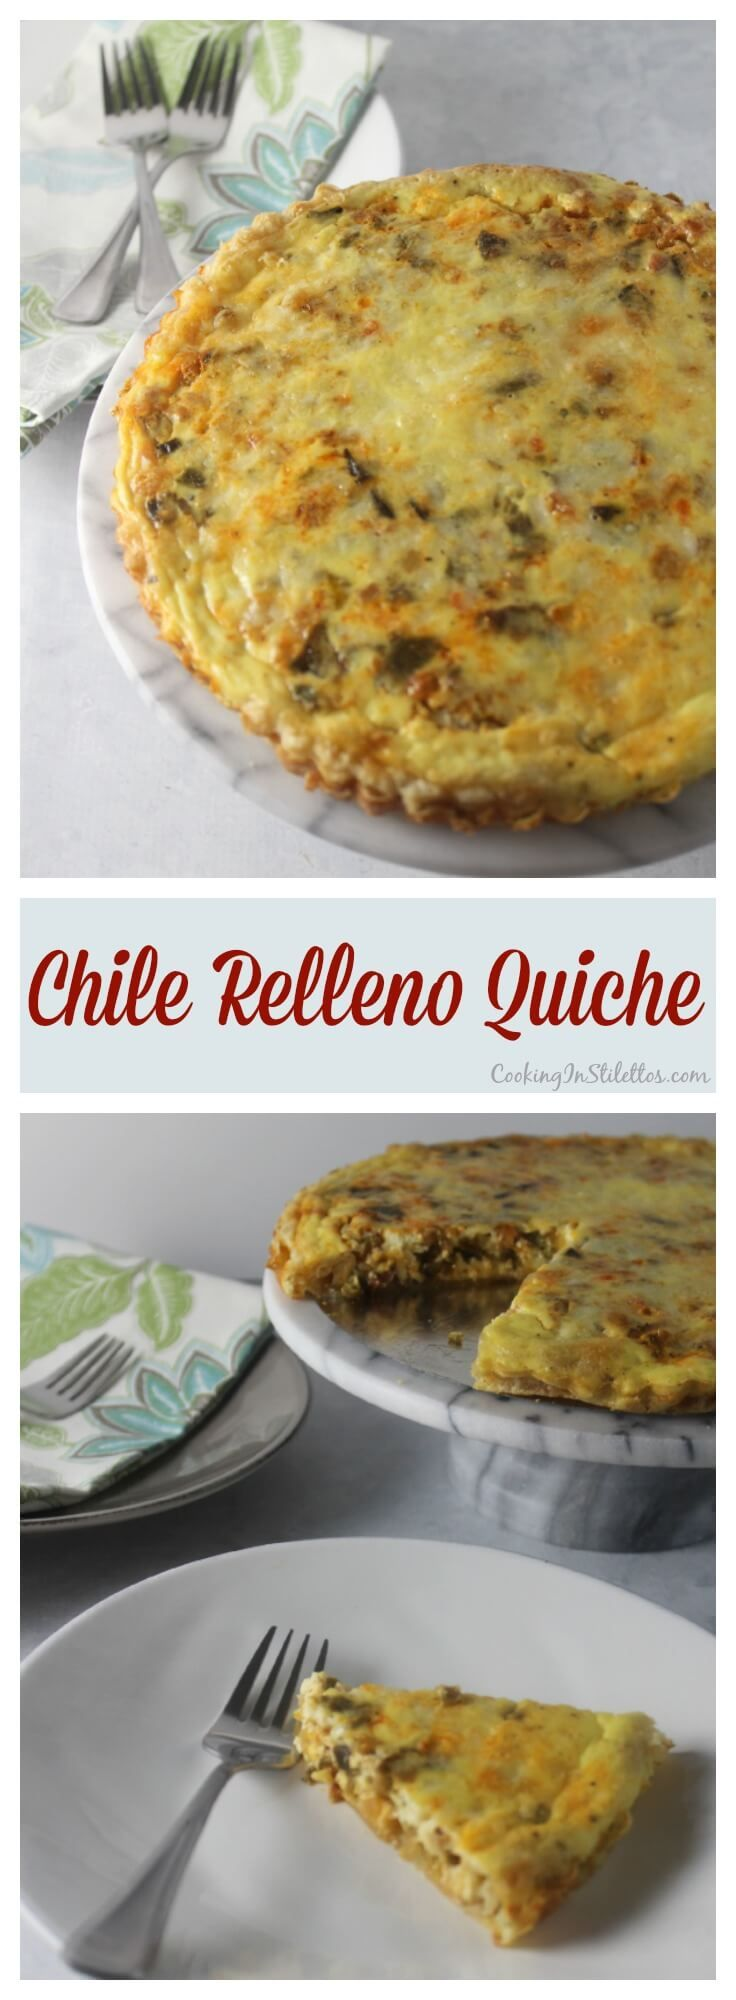 Chile Relleno Quiche from CookingInStilettos.com is a brunch showstopper. Roasted poblanos and pancetta nestled in a puff pastry crust with eggs and sharp cheddar cheese makes for a delicious bite.  This east quiche recipe is perfect for breakfast, brunch, or even dinner!